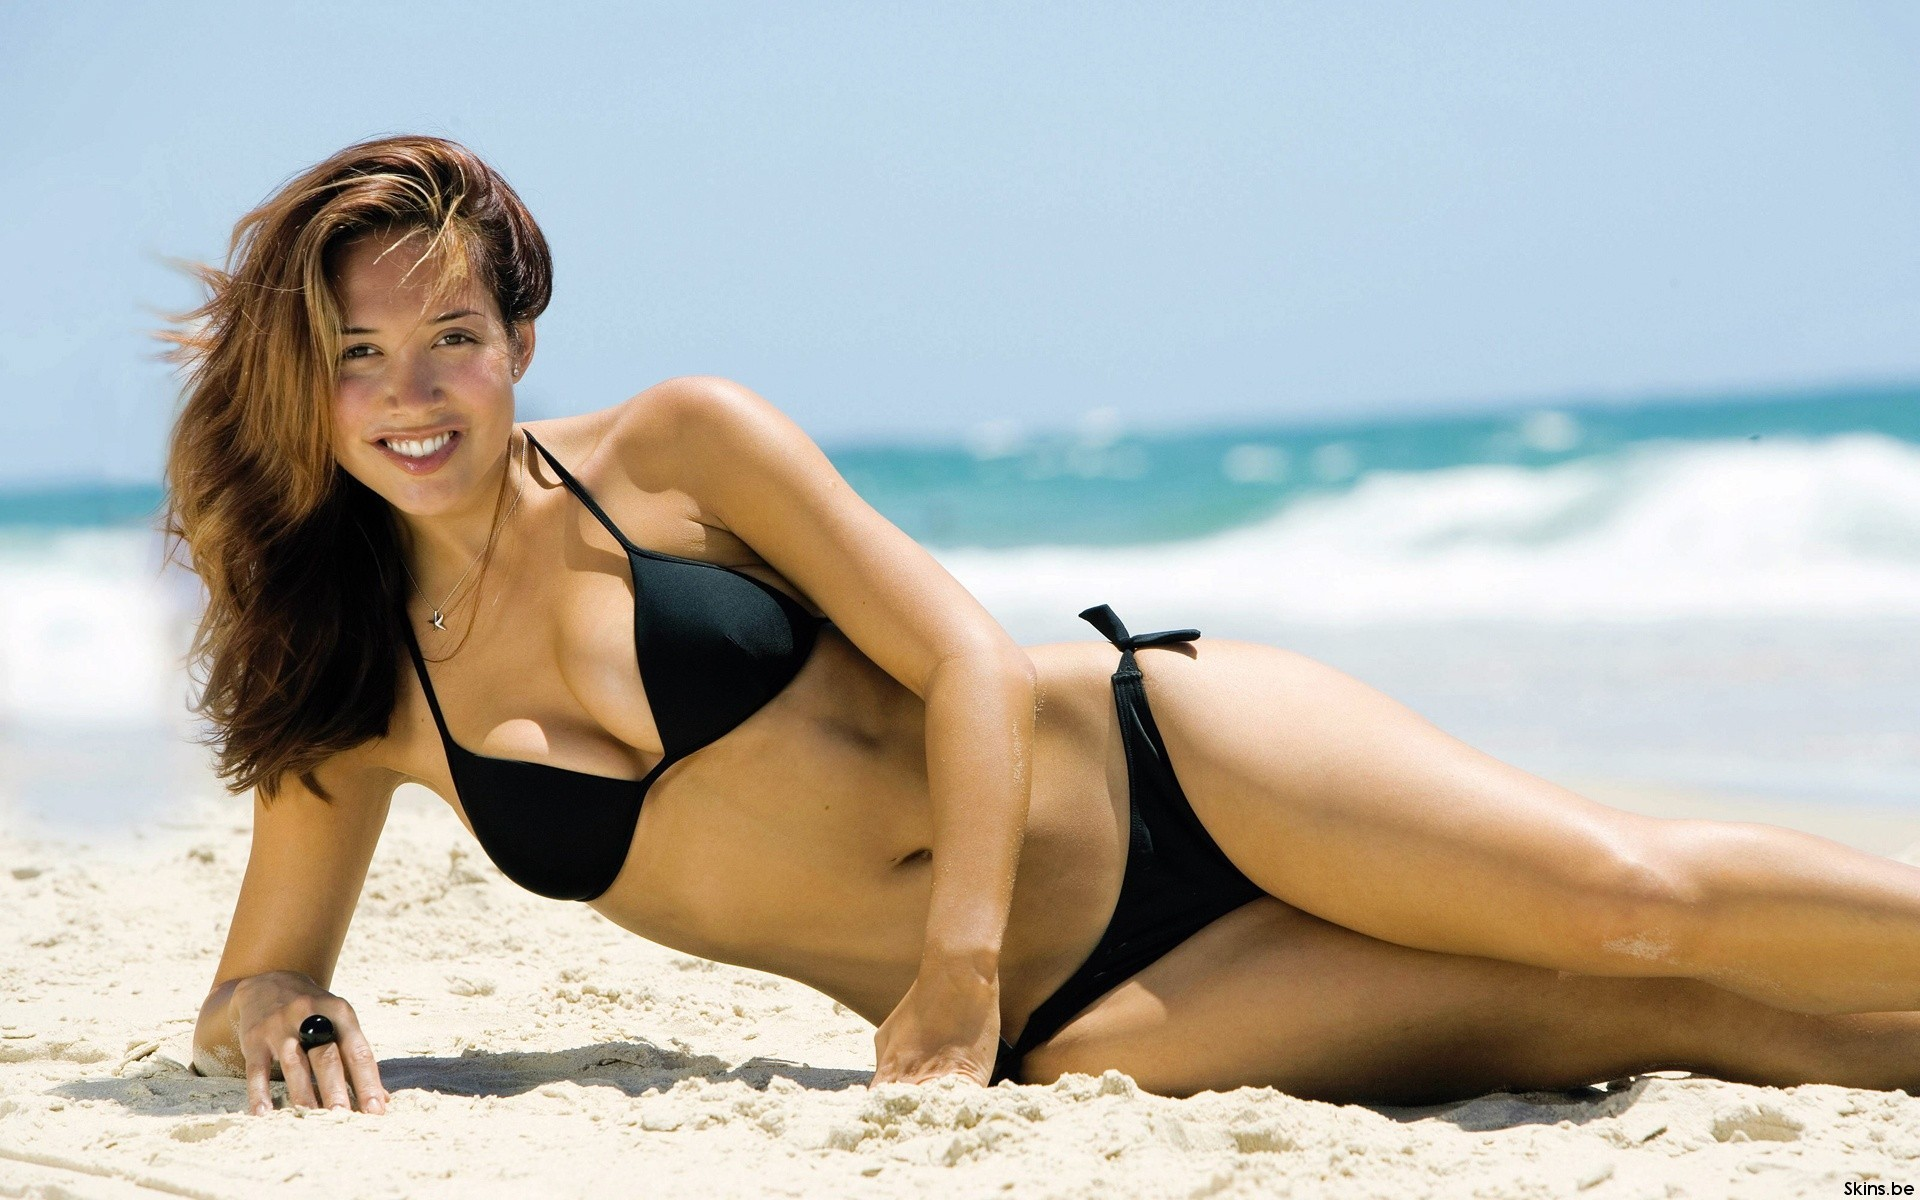 Beaches woman bikini sand HD Wallpaper